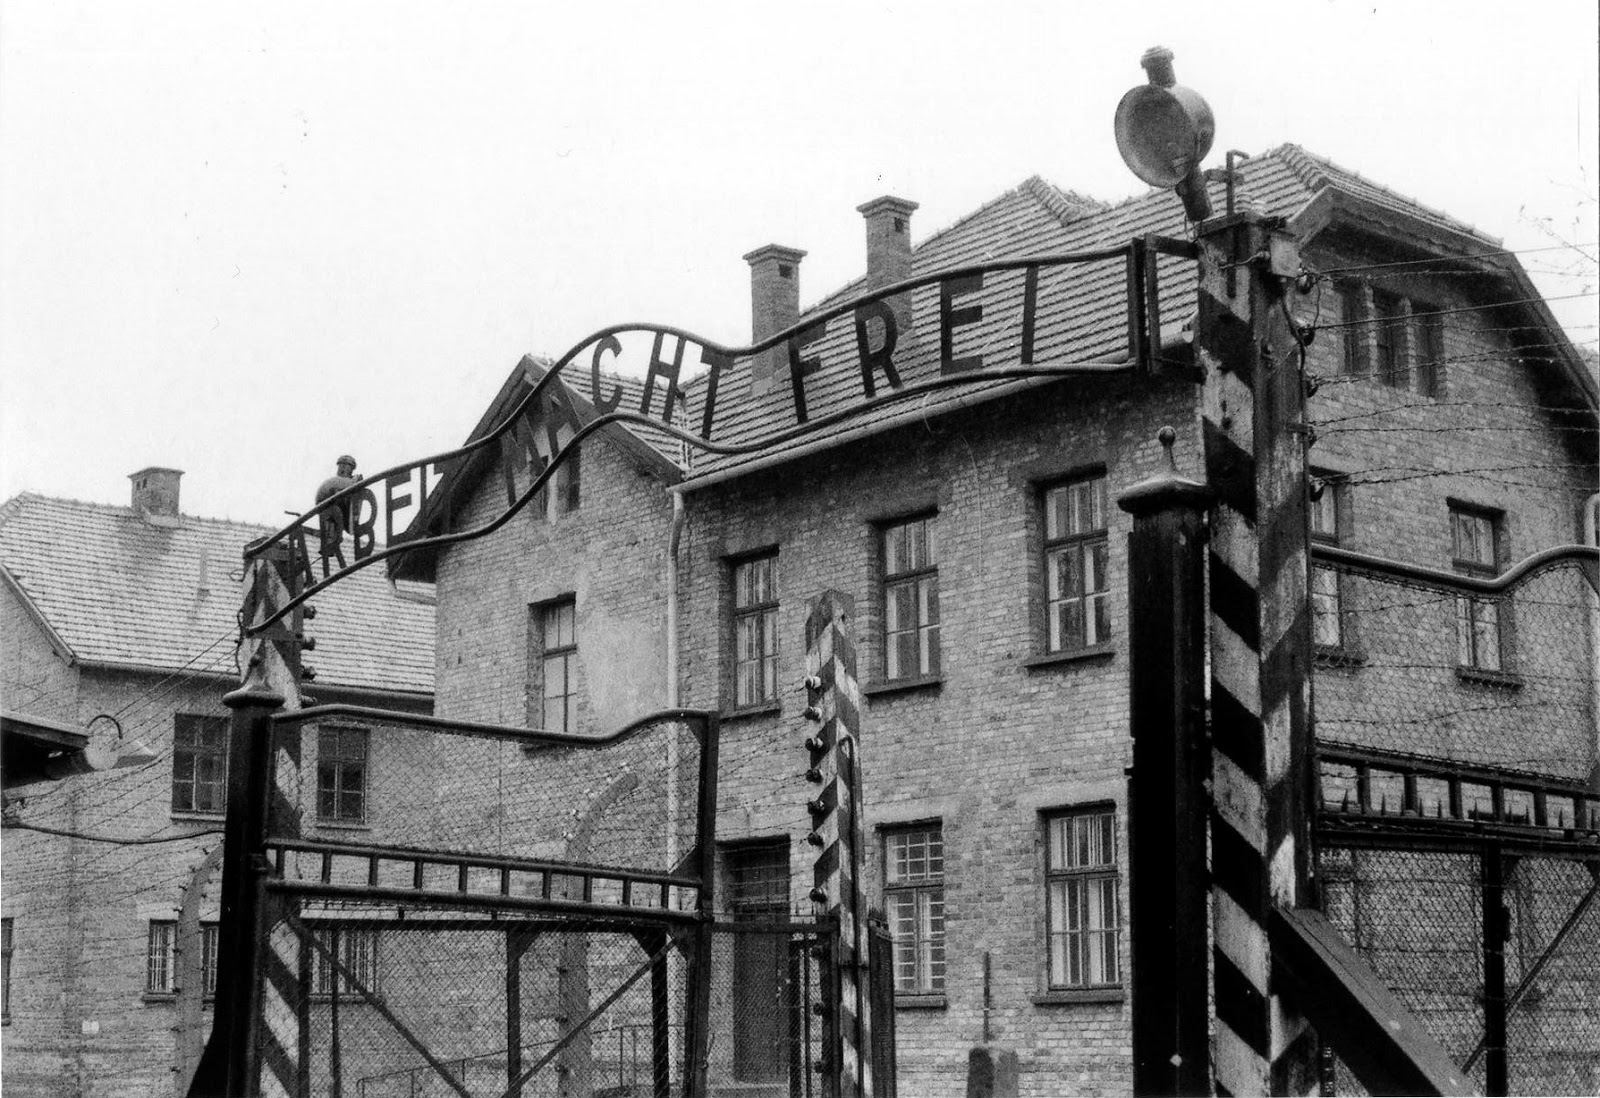 essay on auschwitz You can find lot of other sample research papers at professayscoma holocaust research paper sample can be titled 'the human catastrophe that was the holocaust' in short the paper would be the title and an introductory statement about the tragedy the main body of the paper will be about the heavy human life loss, the jewish.